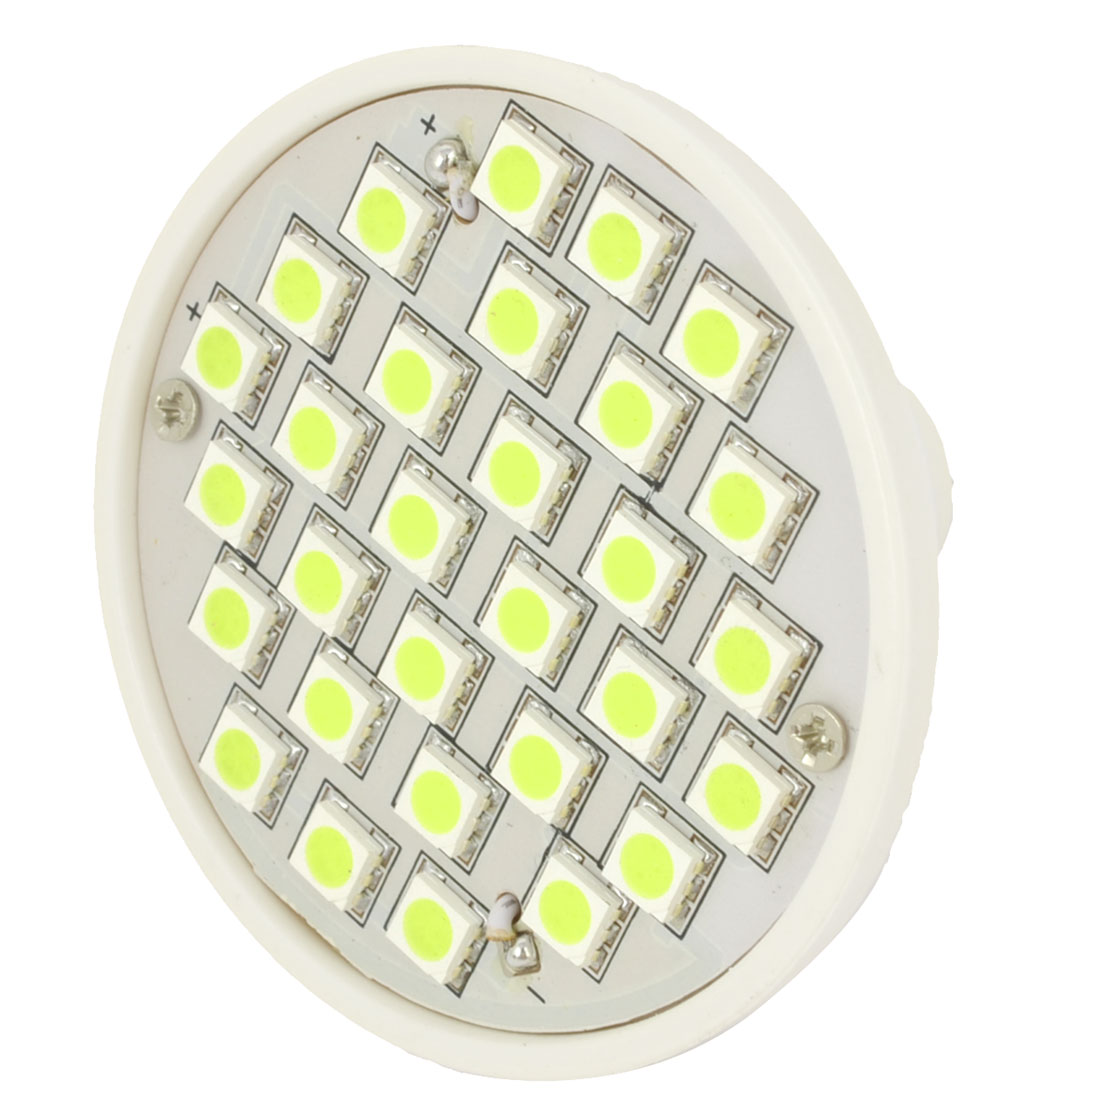 AC 220V White 30 3528 SMD LED Spot Light Energy Saving Bulb MR16 3000K 3W